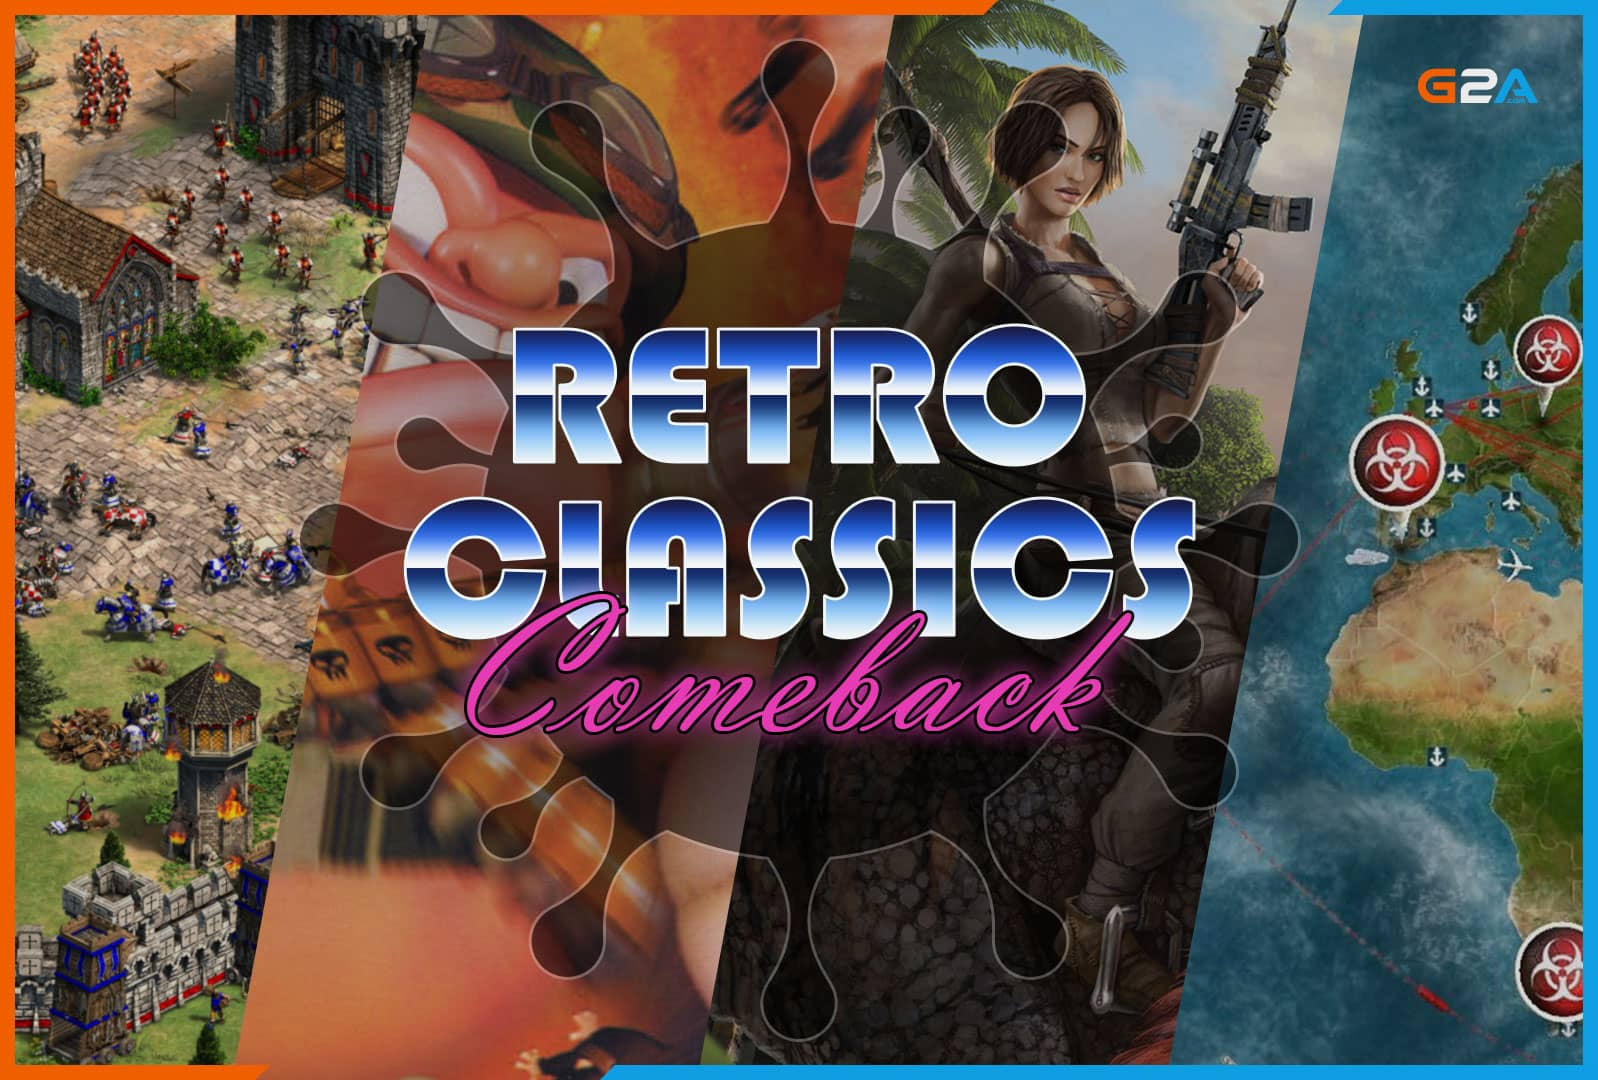 Retro classics are making a comeback as people get back into gaming during lockdown, G2A data reveals